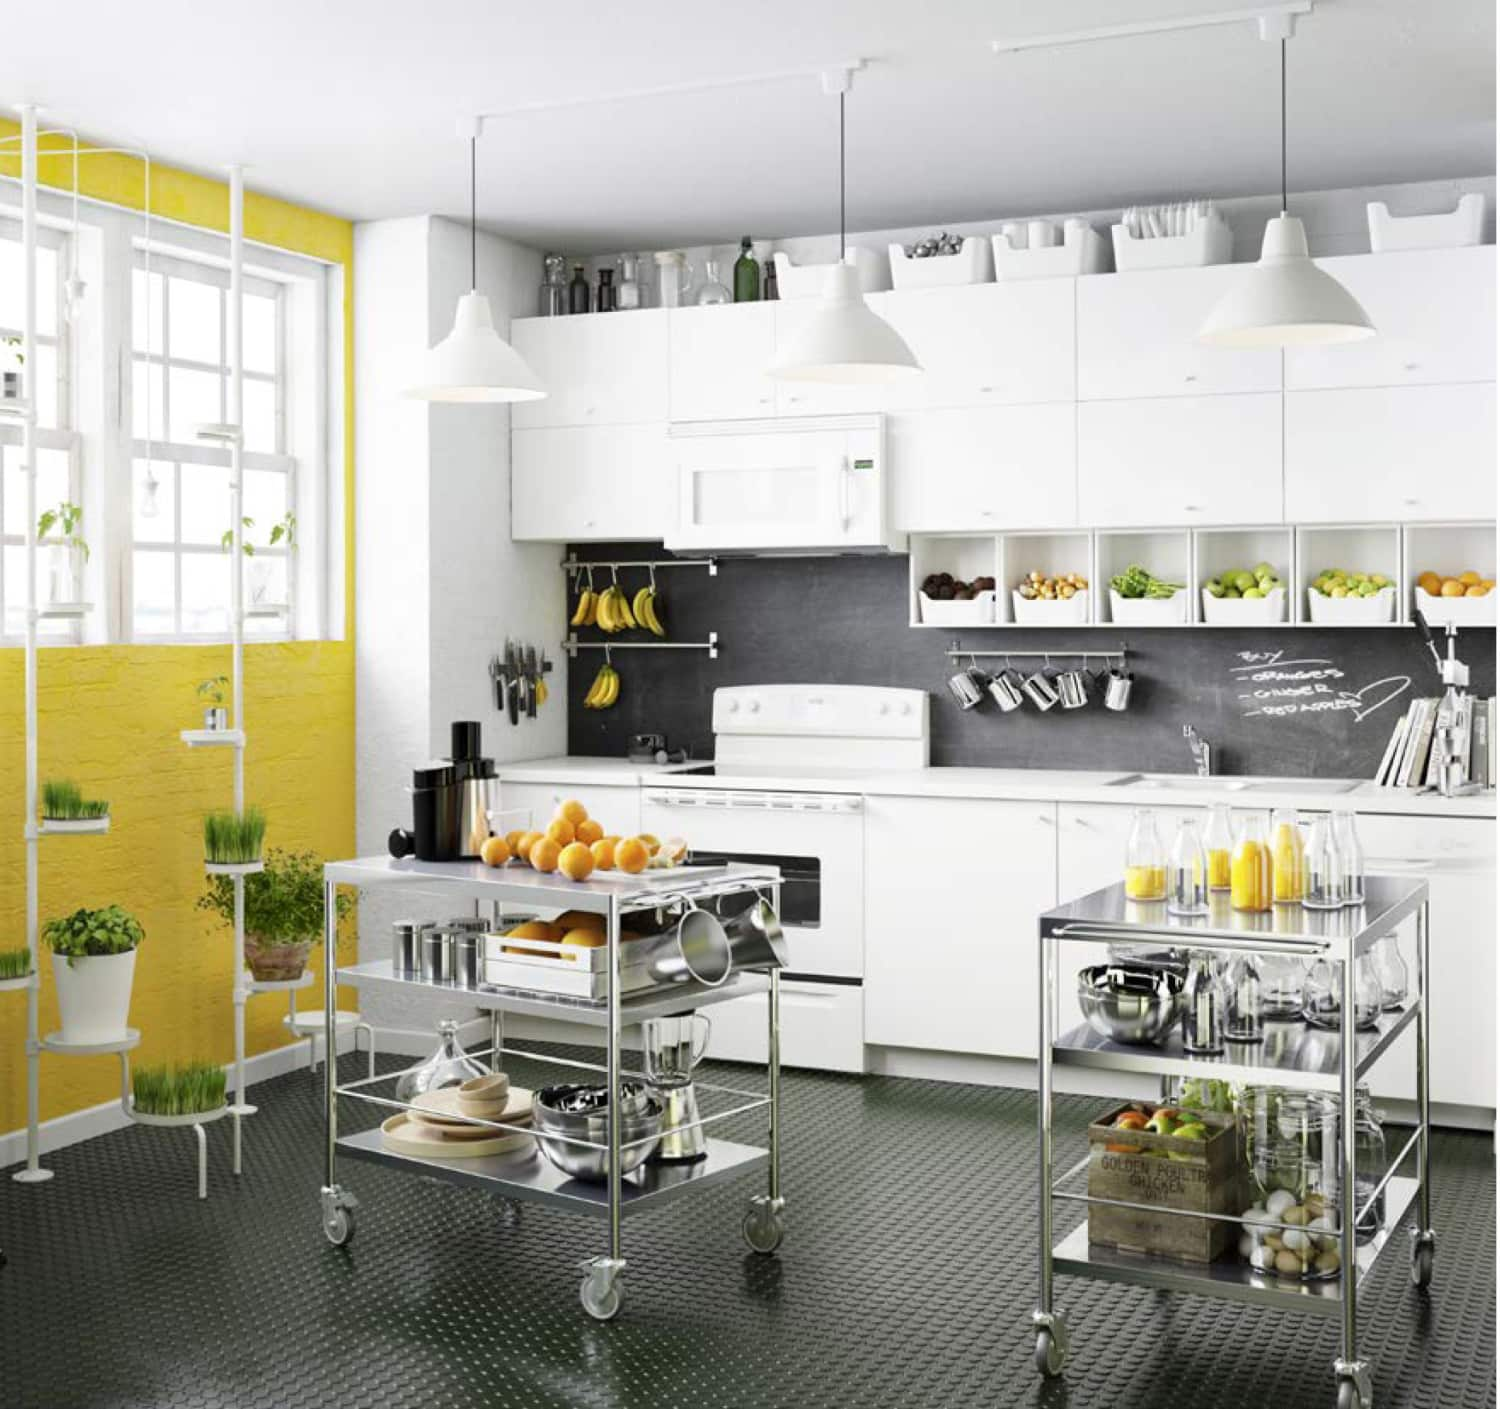 Consumers Kitchen Cabinets: A Guide To IKEA's New SEKTION Kitchen Cabinets! We've Got